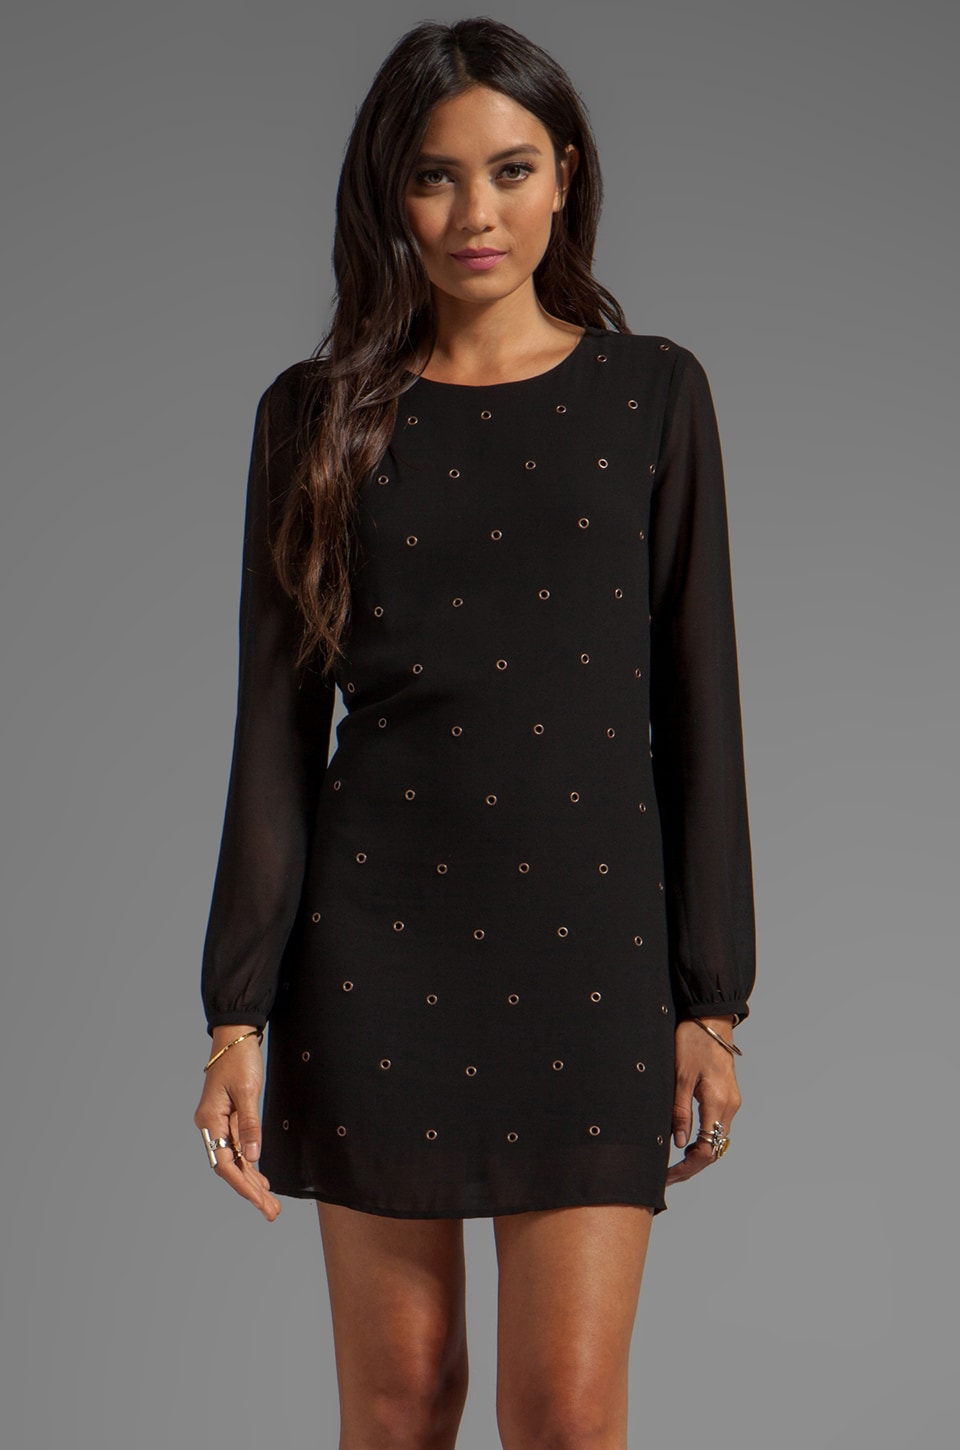 Lucca Couture Grommet Long Sleeve Dress in Black